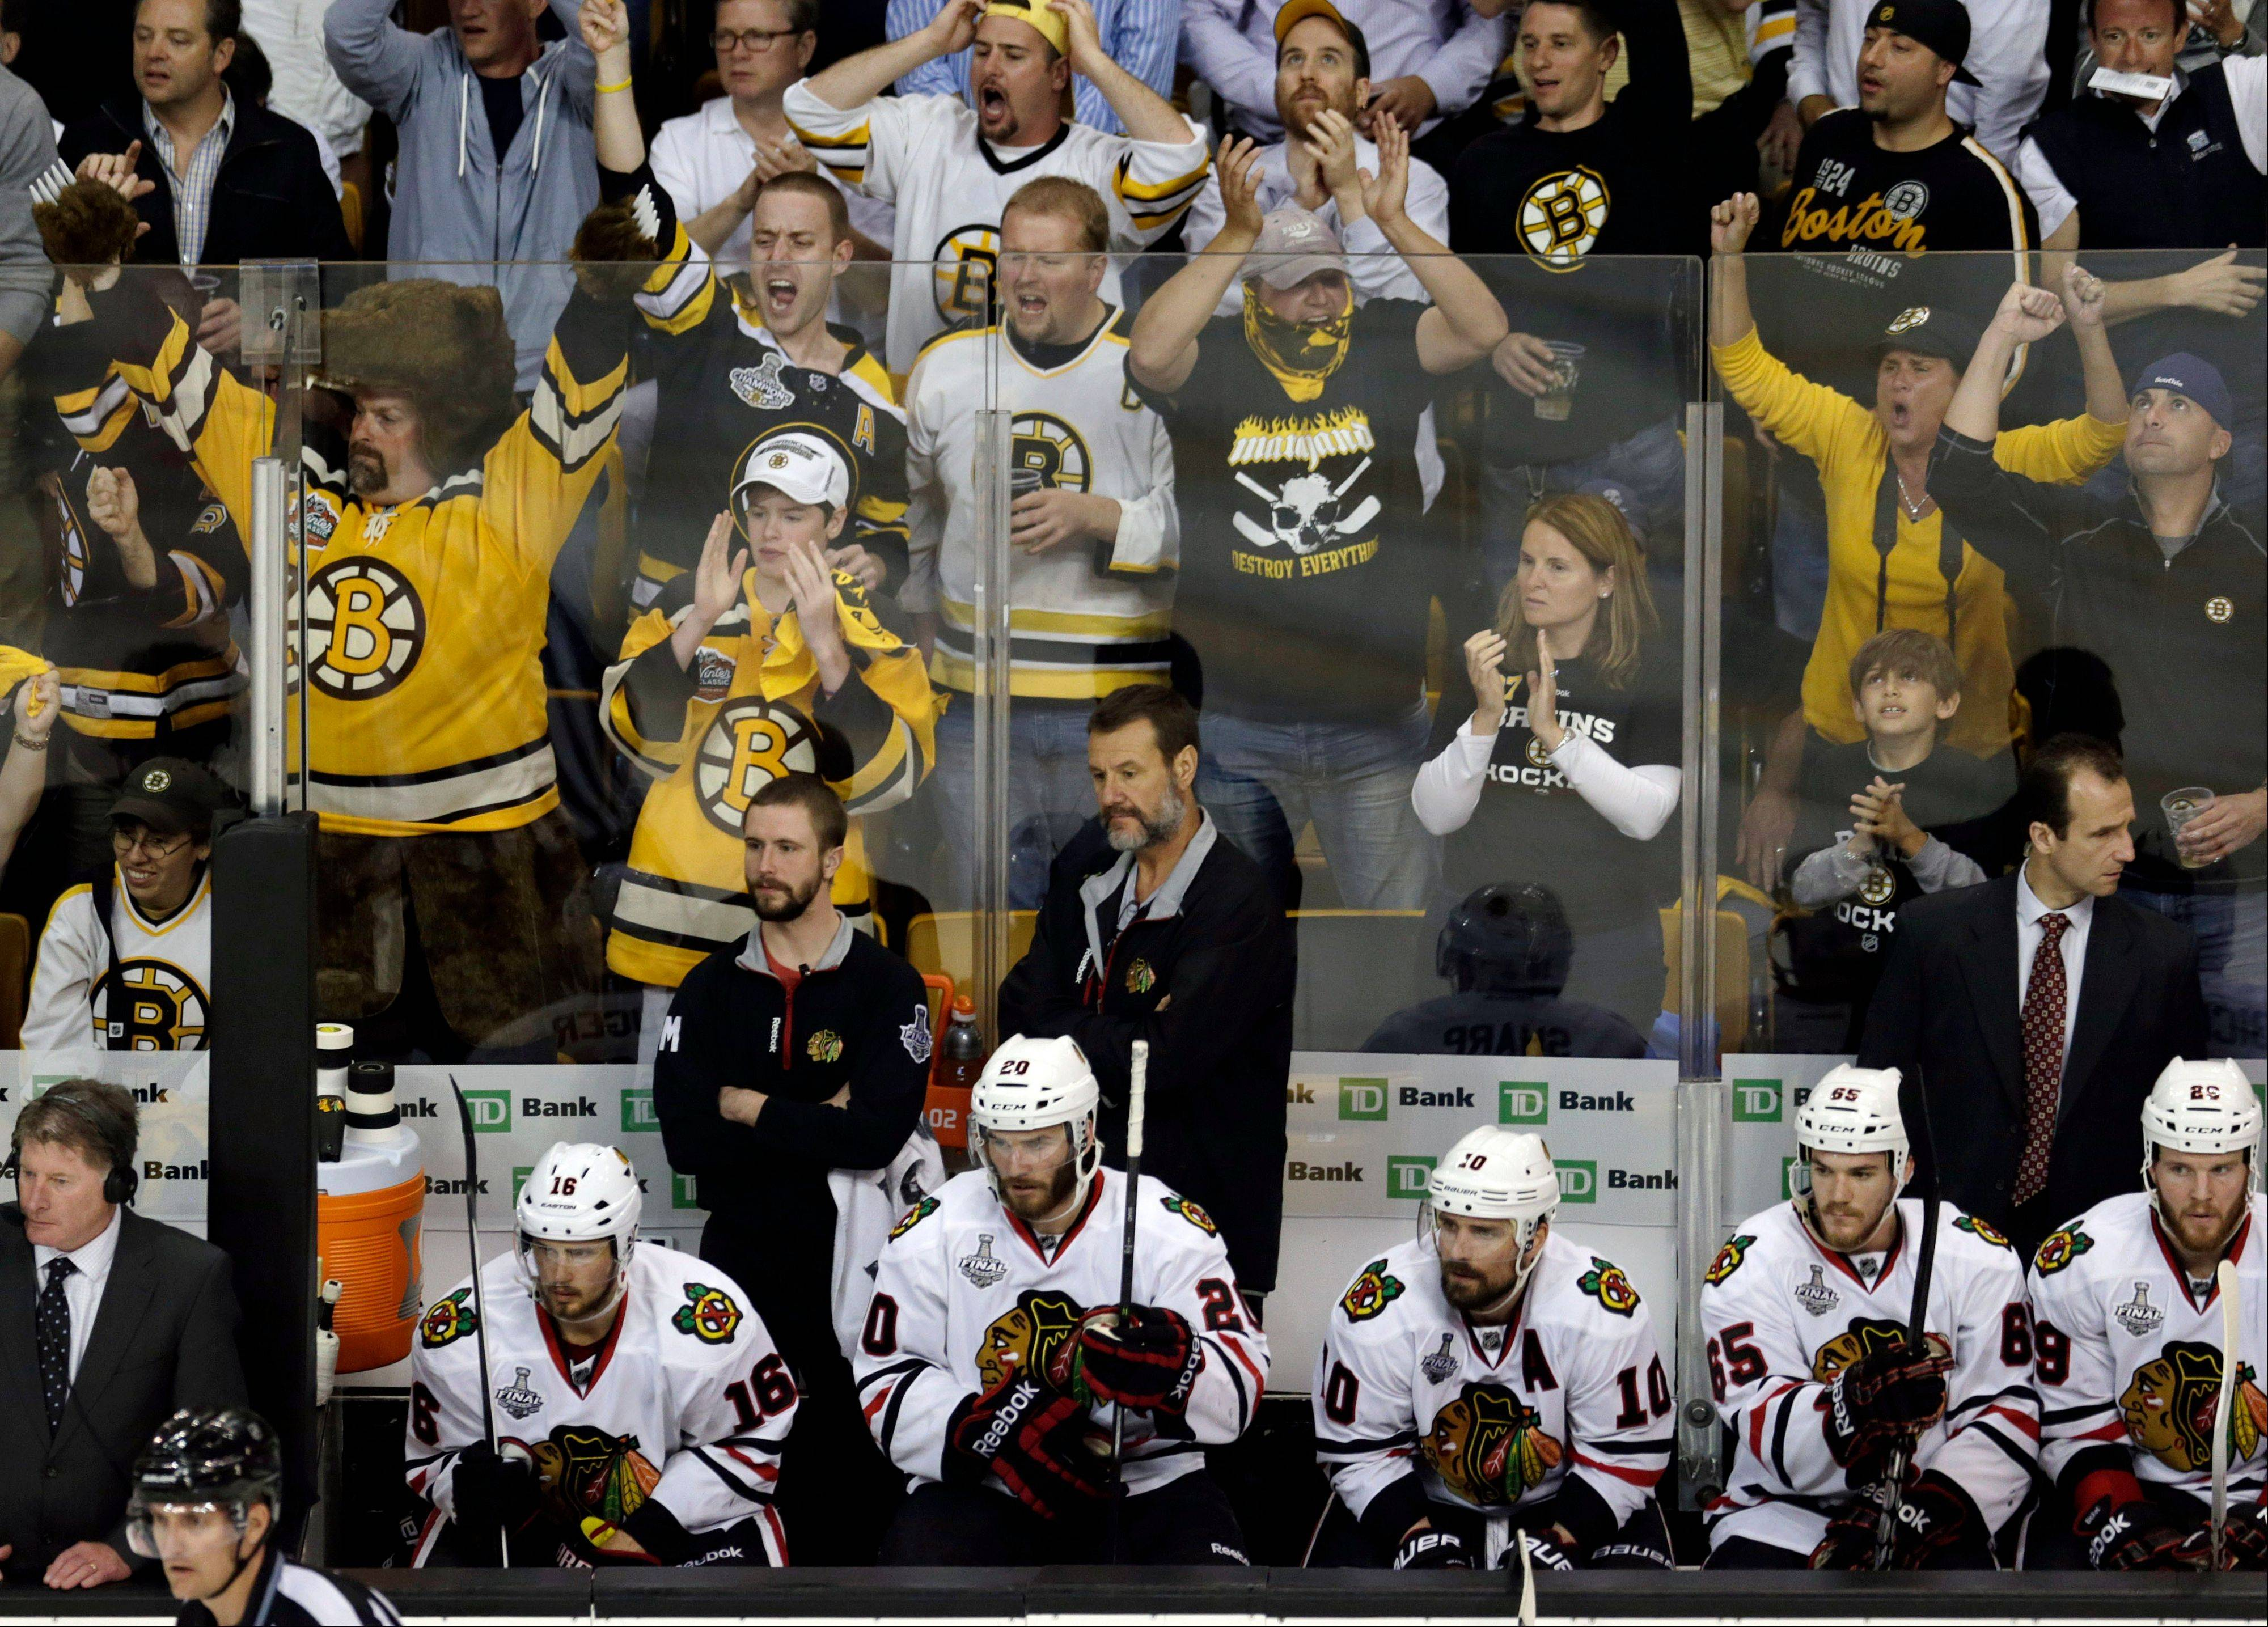 Bruins fans cheer behind the Blackhawks� bench during the third period of Game 3 Monday in Boston.